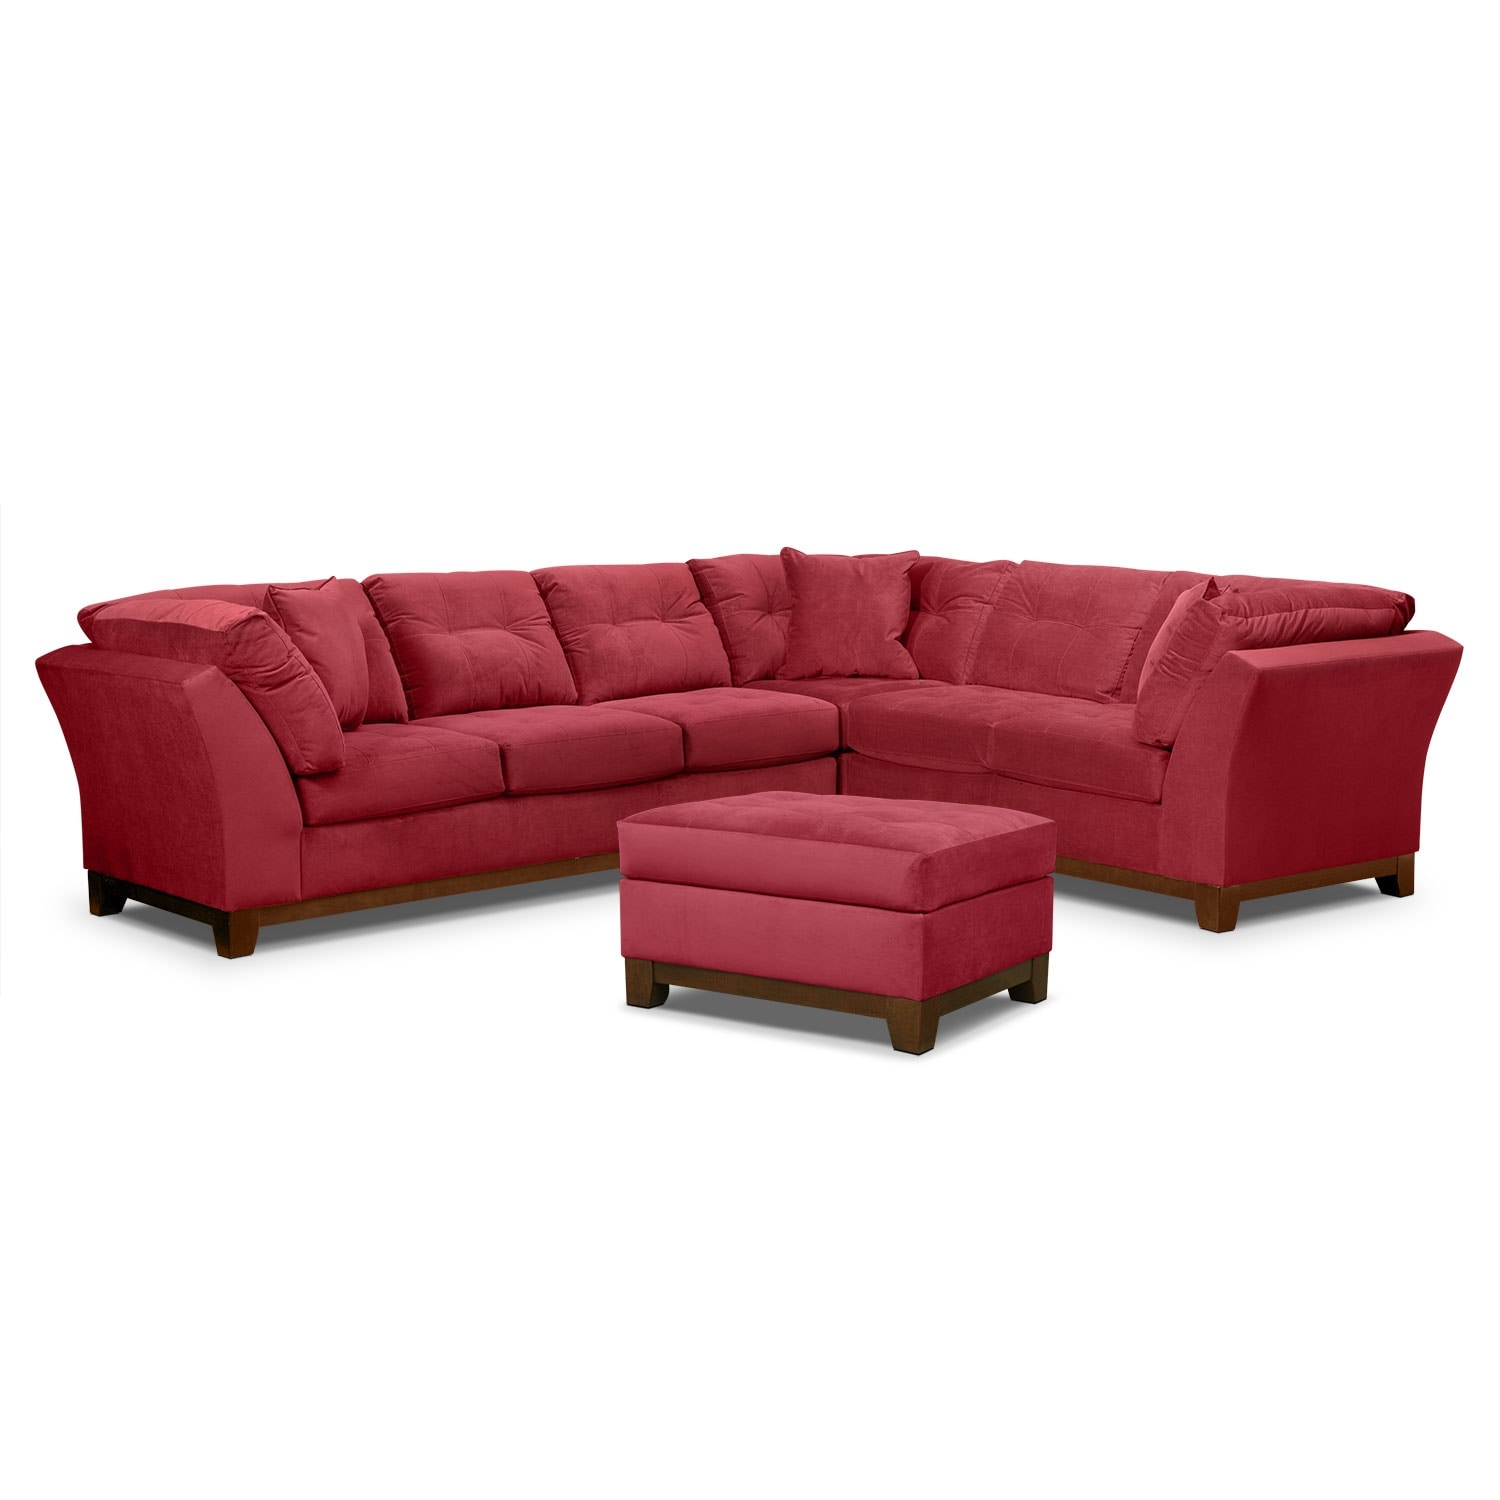 Living Room Furniture - Solace Poppy II 3 Pc. Sectional (Reverse) and Ottoman